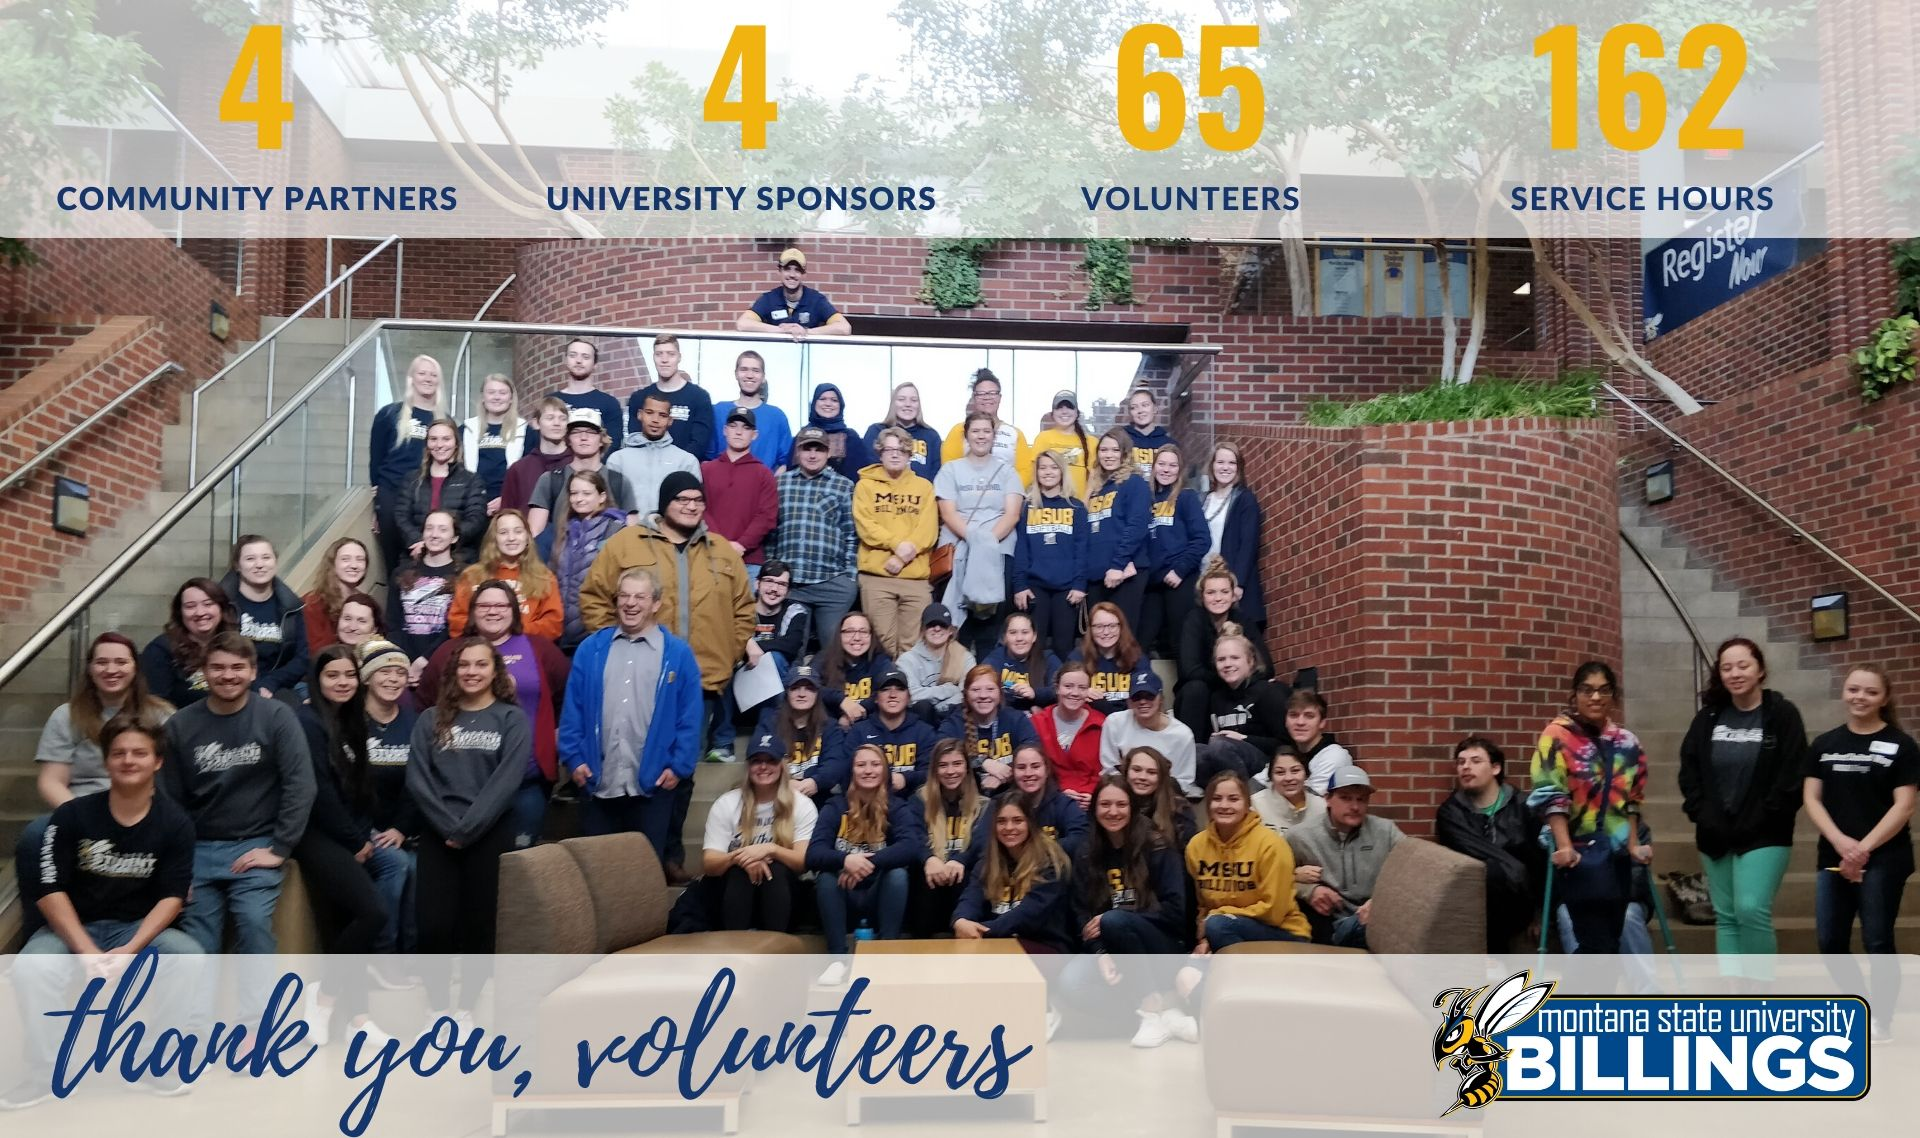 4 COMMUNITY PARTNERS 4 UNIVERSITY PARTNERS 65 VOLUNTEERS 162 SERVICE HOURS THANK YOU VOLUNTEERS